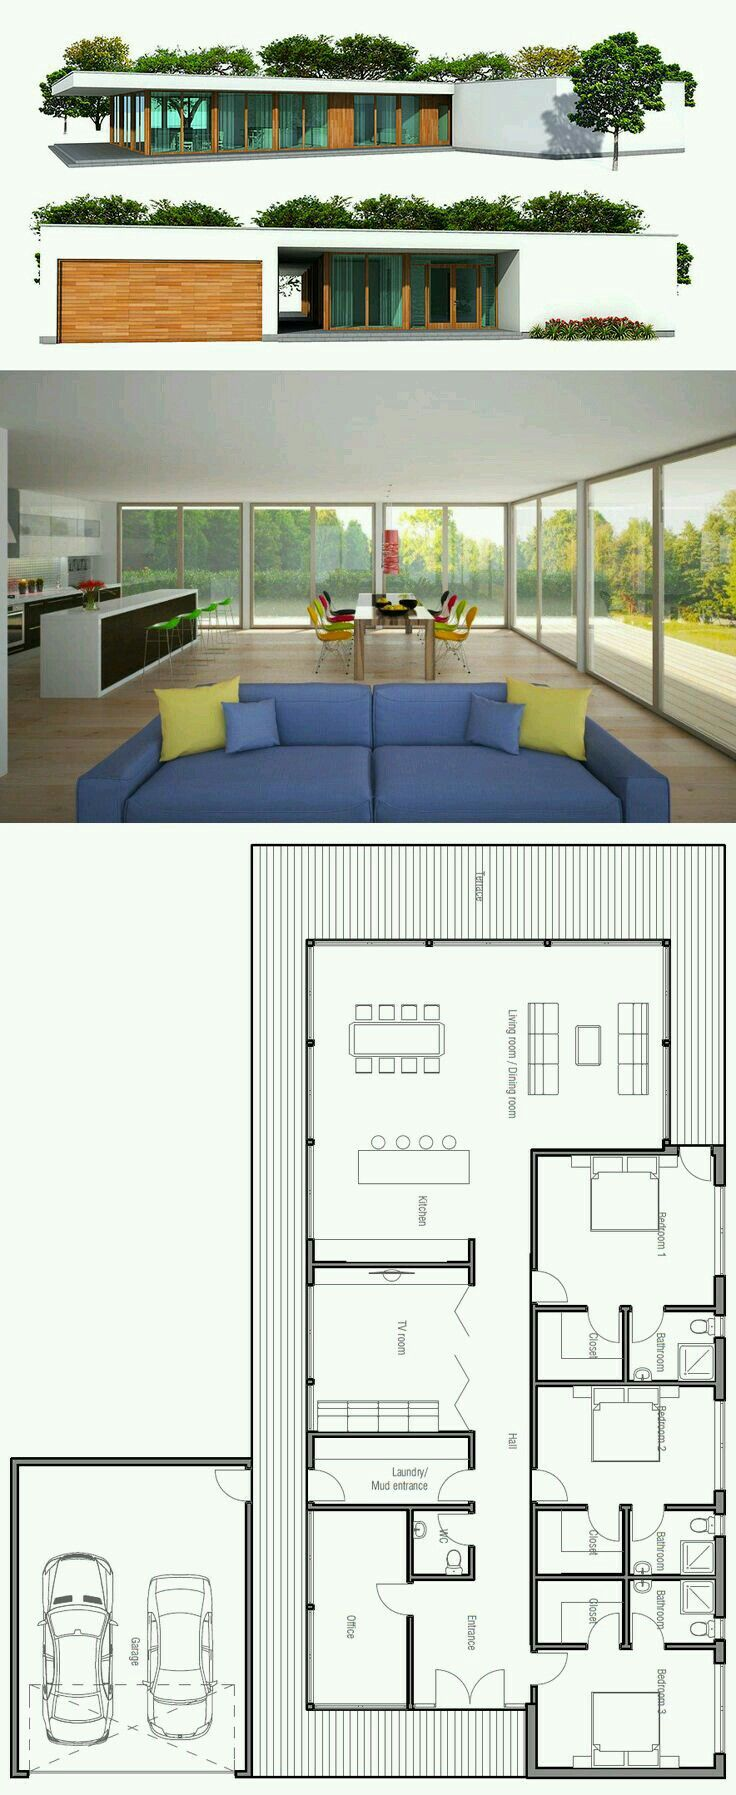 Pin by Betsie Van Der Merwe on Small House Plans | Pinterest | Small ...